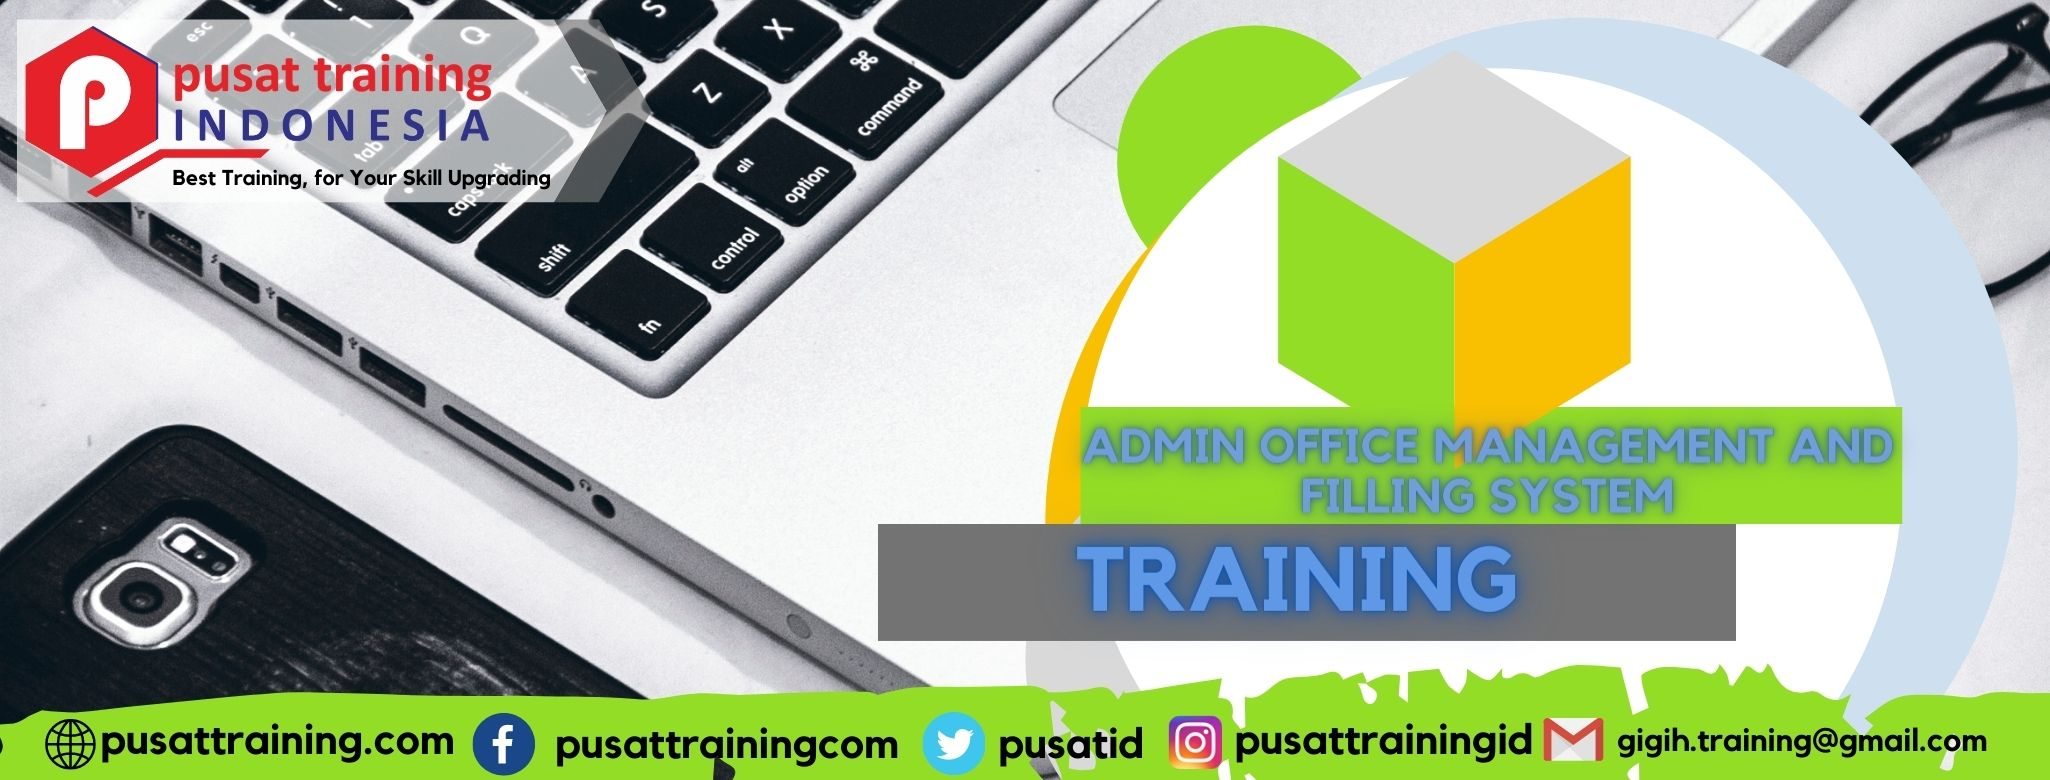 PELATIHAN ADMIN OFFICE MANAGEMENT AND FILLING SYSTEM